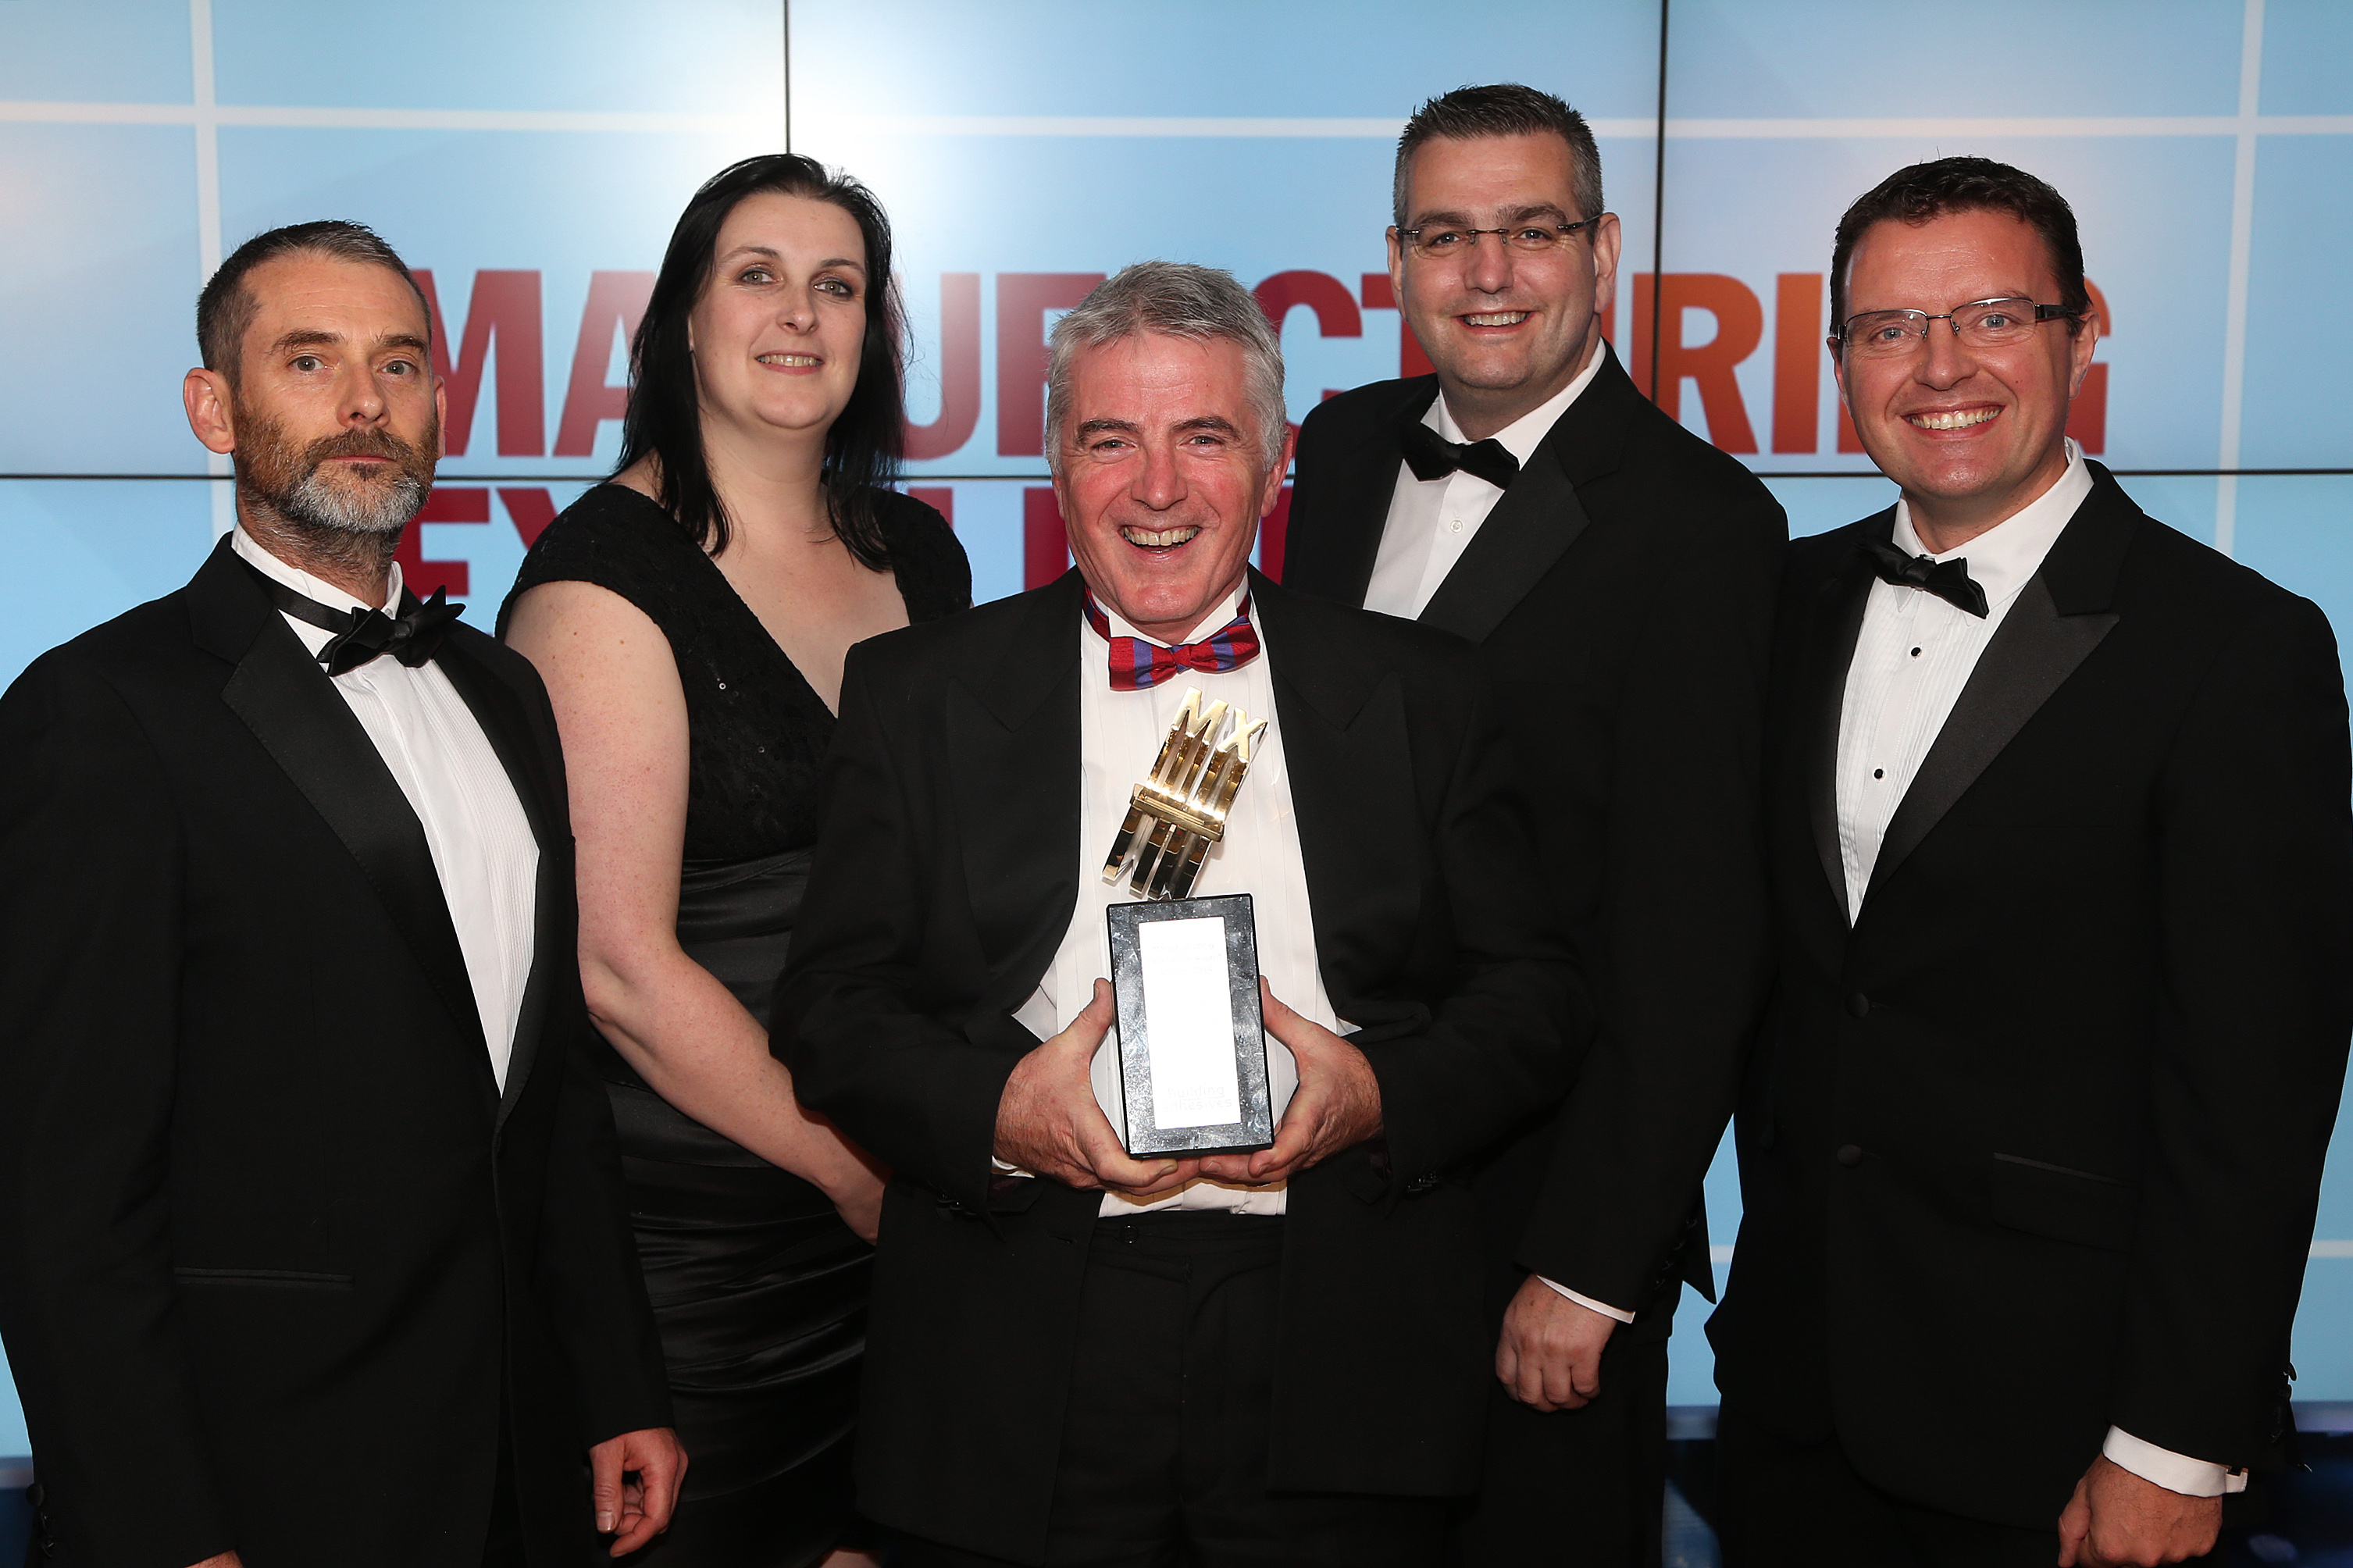 Building Adhesives scooped the Business Development And Change Management Award.